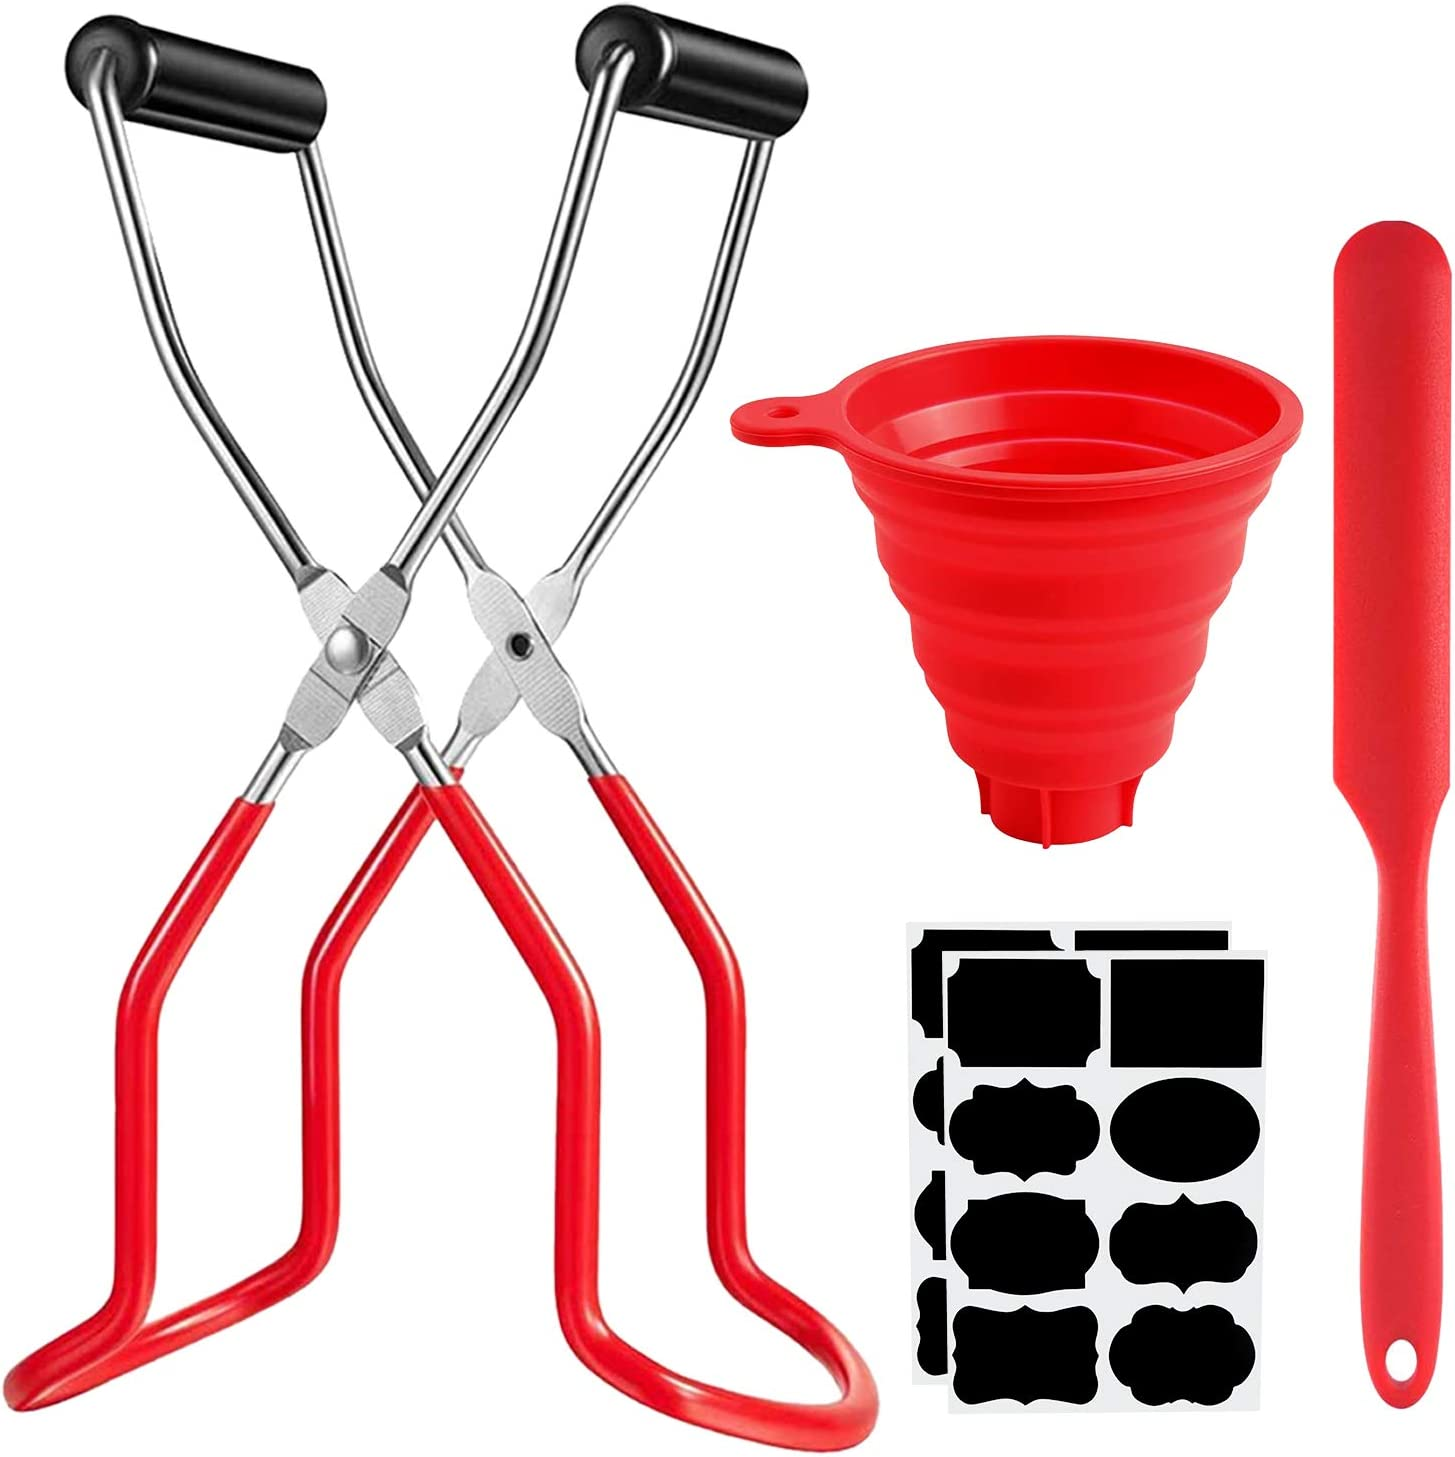 O'woda Canning Jar Lifter with Rubber Grips Set, 4 Piece Home Canning Tool Set, Long Handle Canning Tongs Stainless Steel Lifter Cans Gripper for Jars Safe and Secure Grip, Red